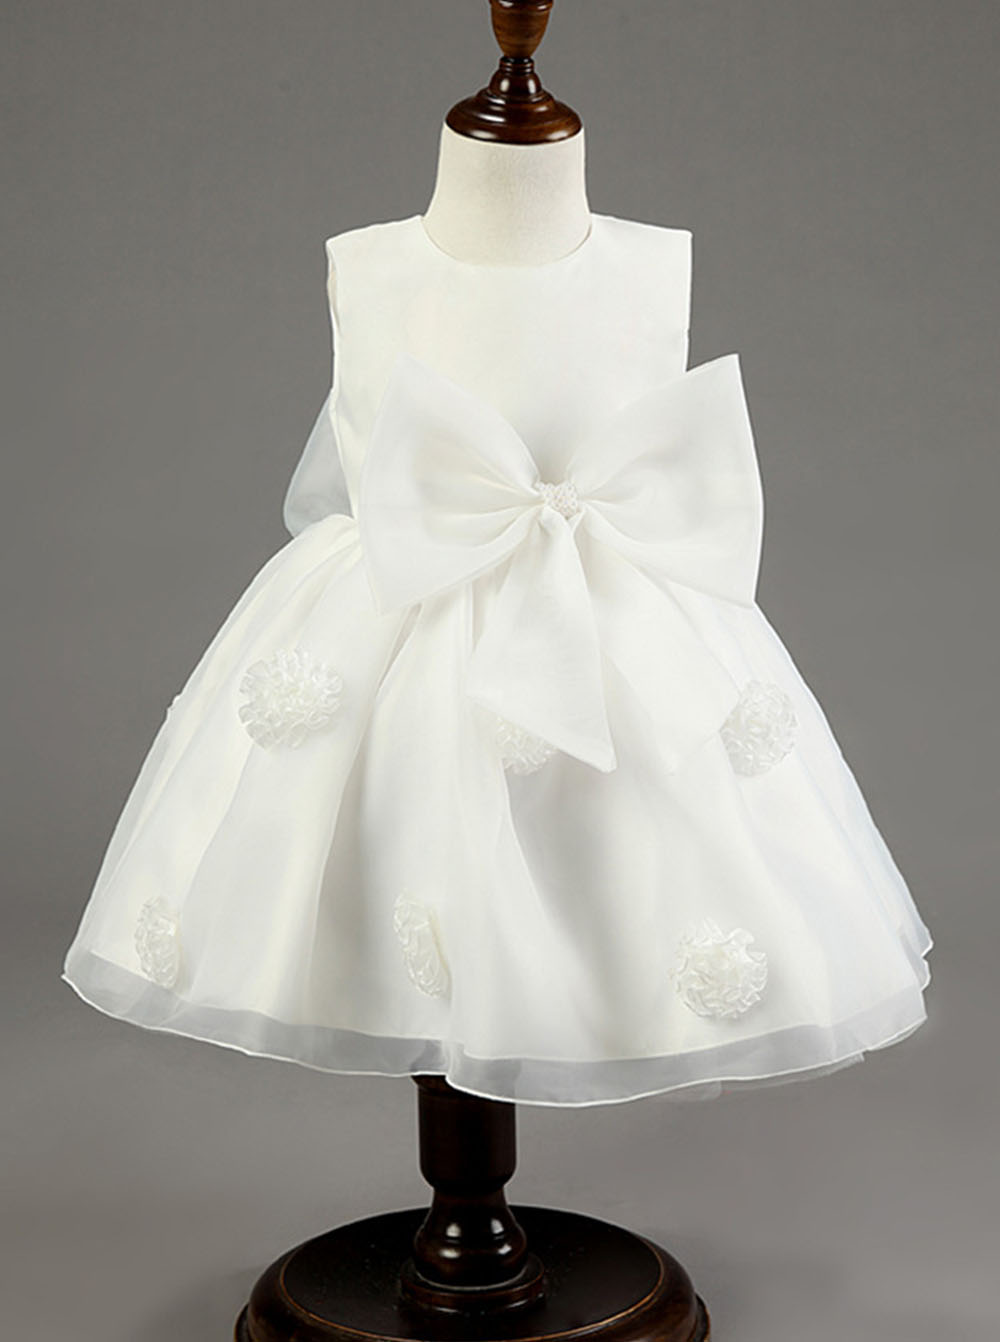 Simple Jewel Sleeveless Short White Organza Flower Girl Dress with Bowknot Handmade Flowers thumbnail